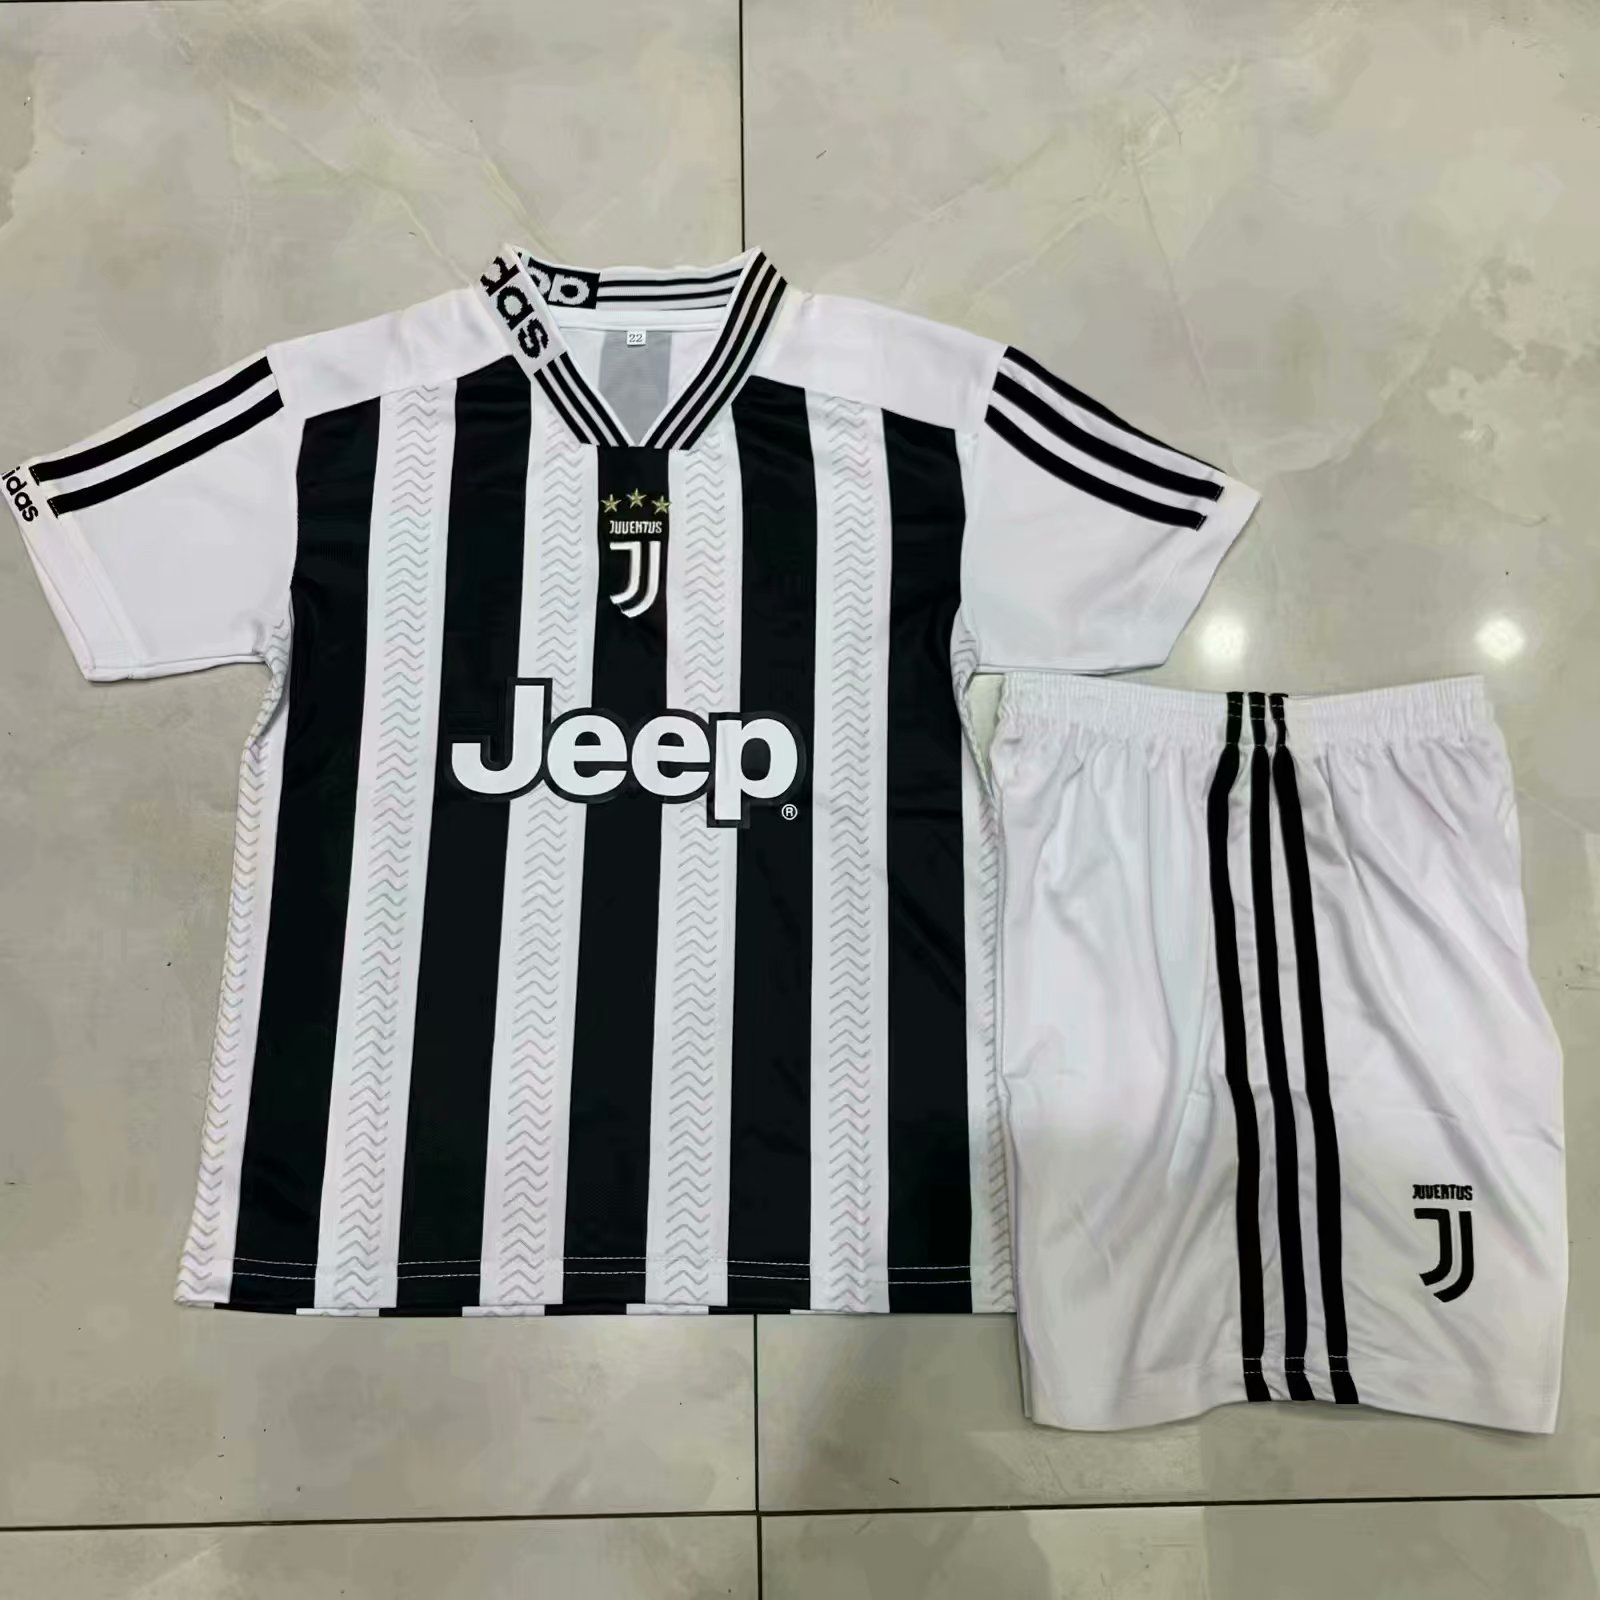 731ec945fb5 2019 20 Kids Juventus Home Soccer Uniforms Children Football Kits